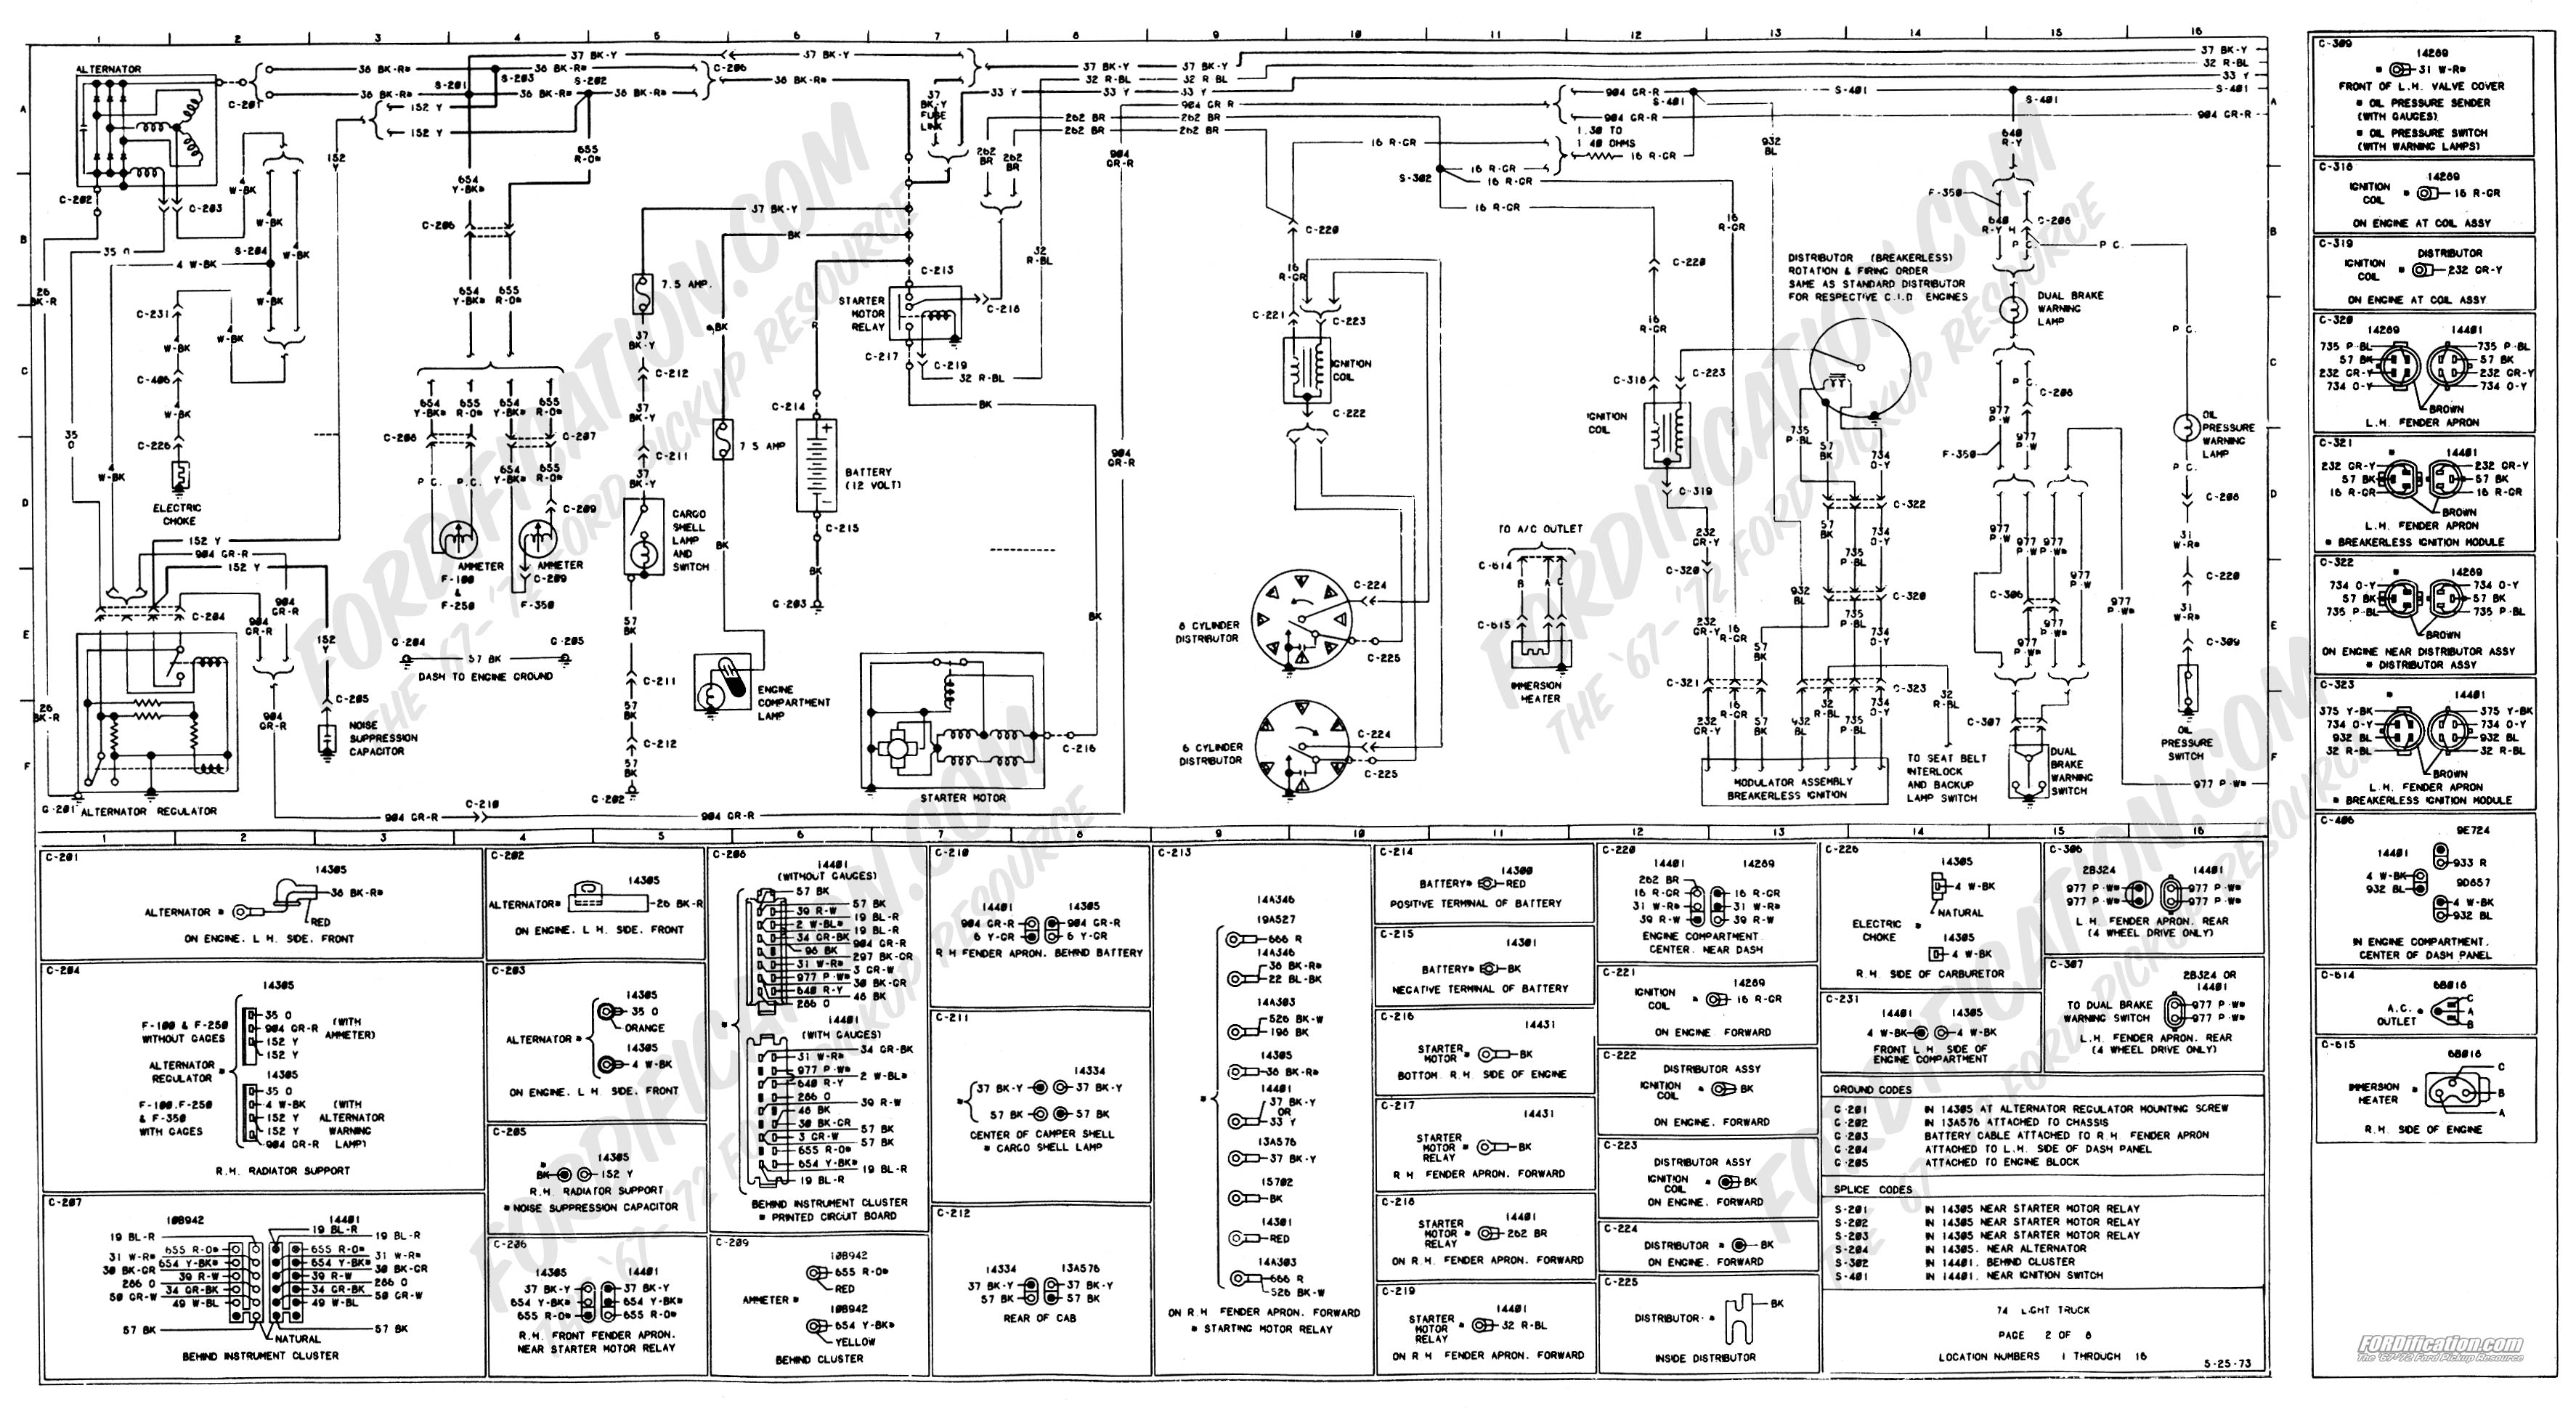 1973 1979 ford truck wiring diagrams schematics fordification net rh fordification net 2008 ford f350 wiring schematic ford f350 electrical schematic